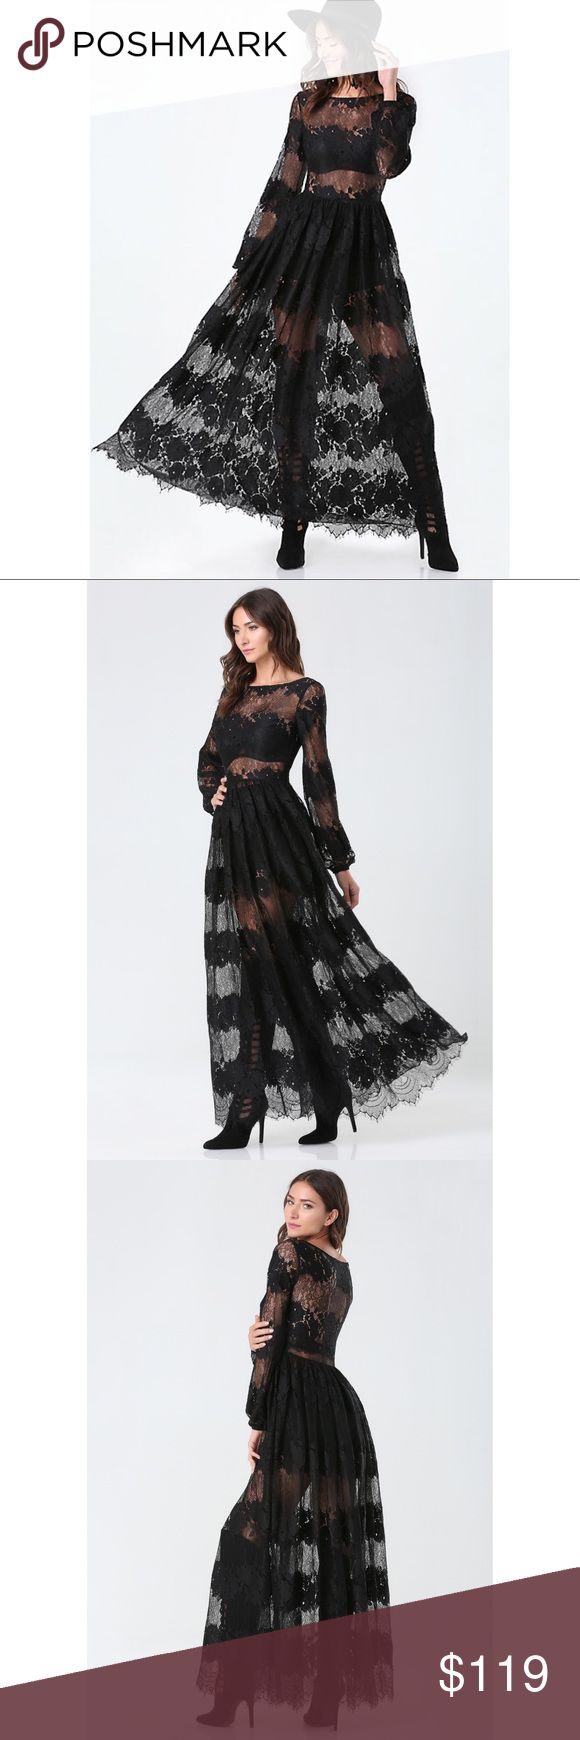 "BEBE LACE BLACK MAXI BOATNECK GOWN DRESS 0 XS $169 NWOT, size 0 (runs like XS), retailed for $169. I bought the same dress in size 2, so this has to find a new home. It comes with a pair of high-waisted shorts/underwear.   DETAILS 2d4. Beyond gorg sheer lace gown ruling the night with high-waist ponte underpanties that peek through. Long sleeves. Hidden side zip closure. 100% Nylon Machine wash Imported Center back to hem: 57"" (145 cm) Model is 5'9"" and wears a US size 6 bebe Dresses Maxi"